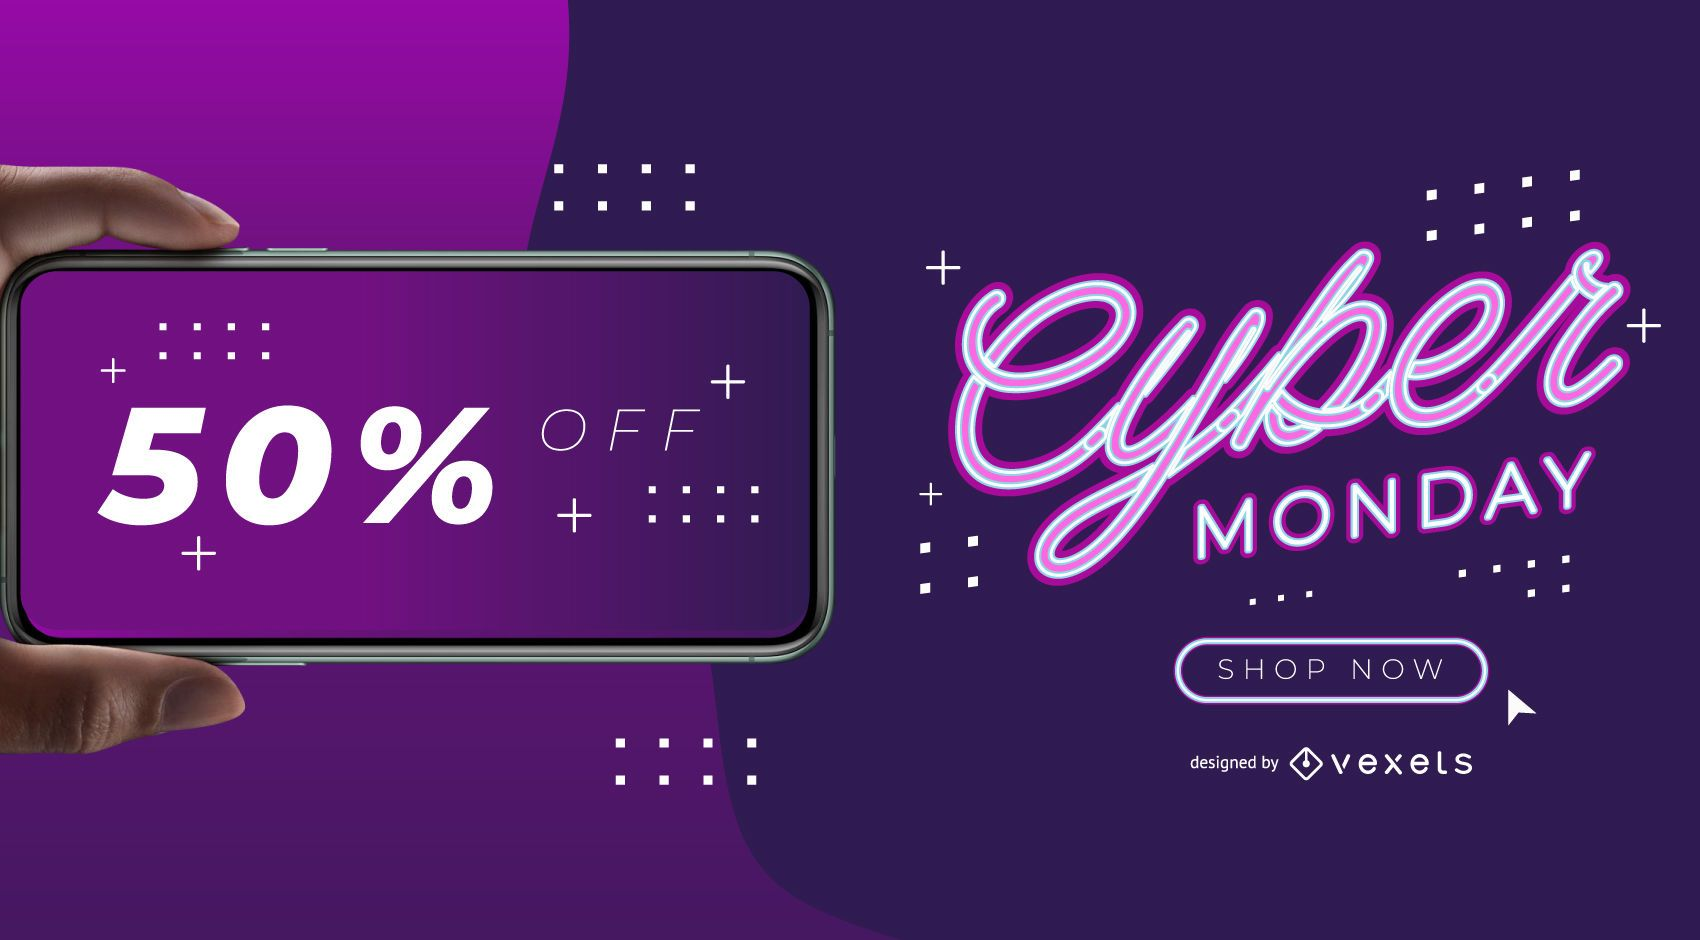 Cyber monday phone banner template